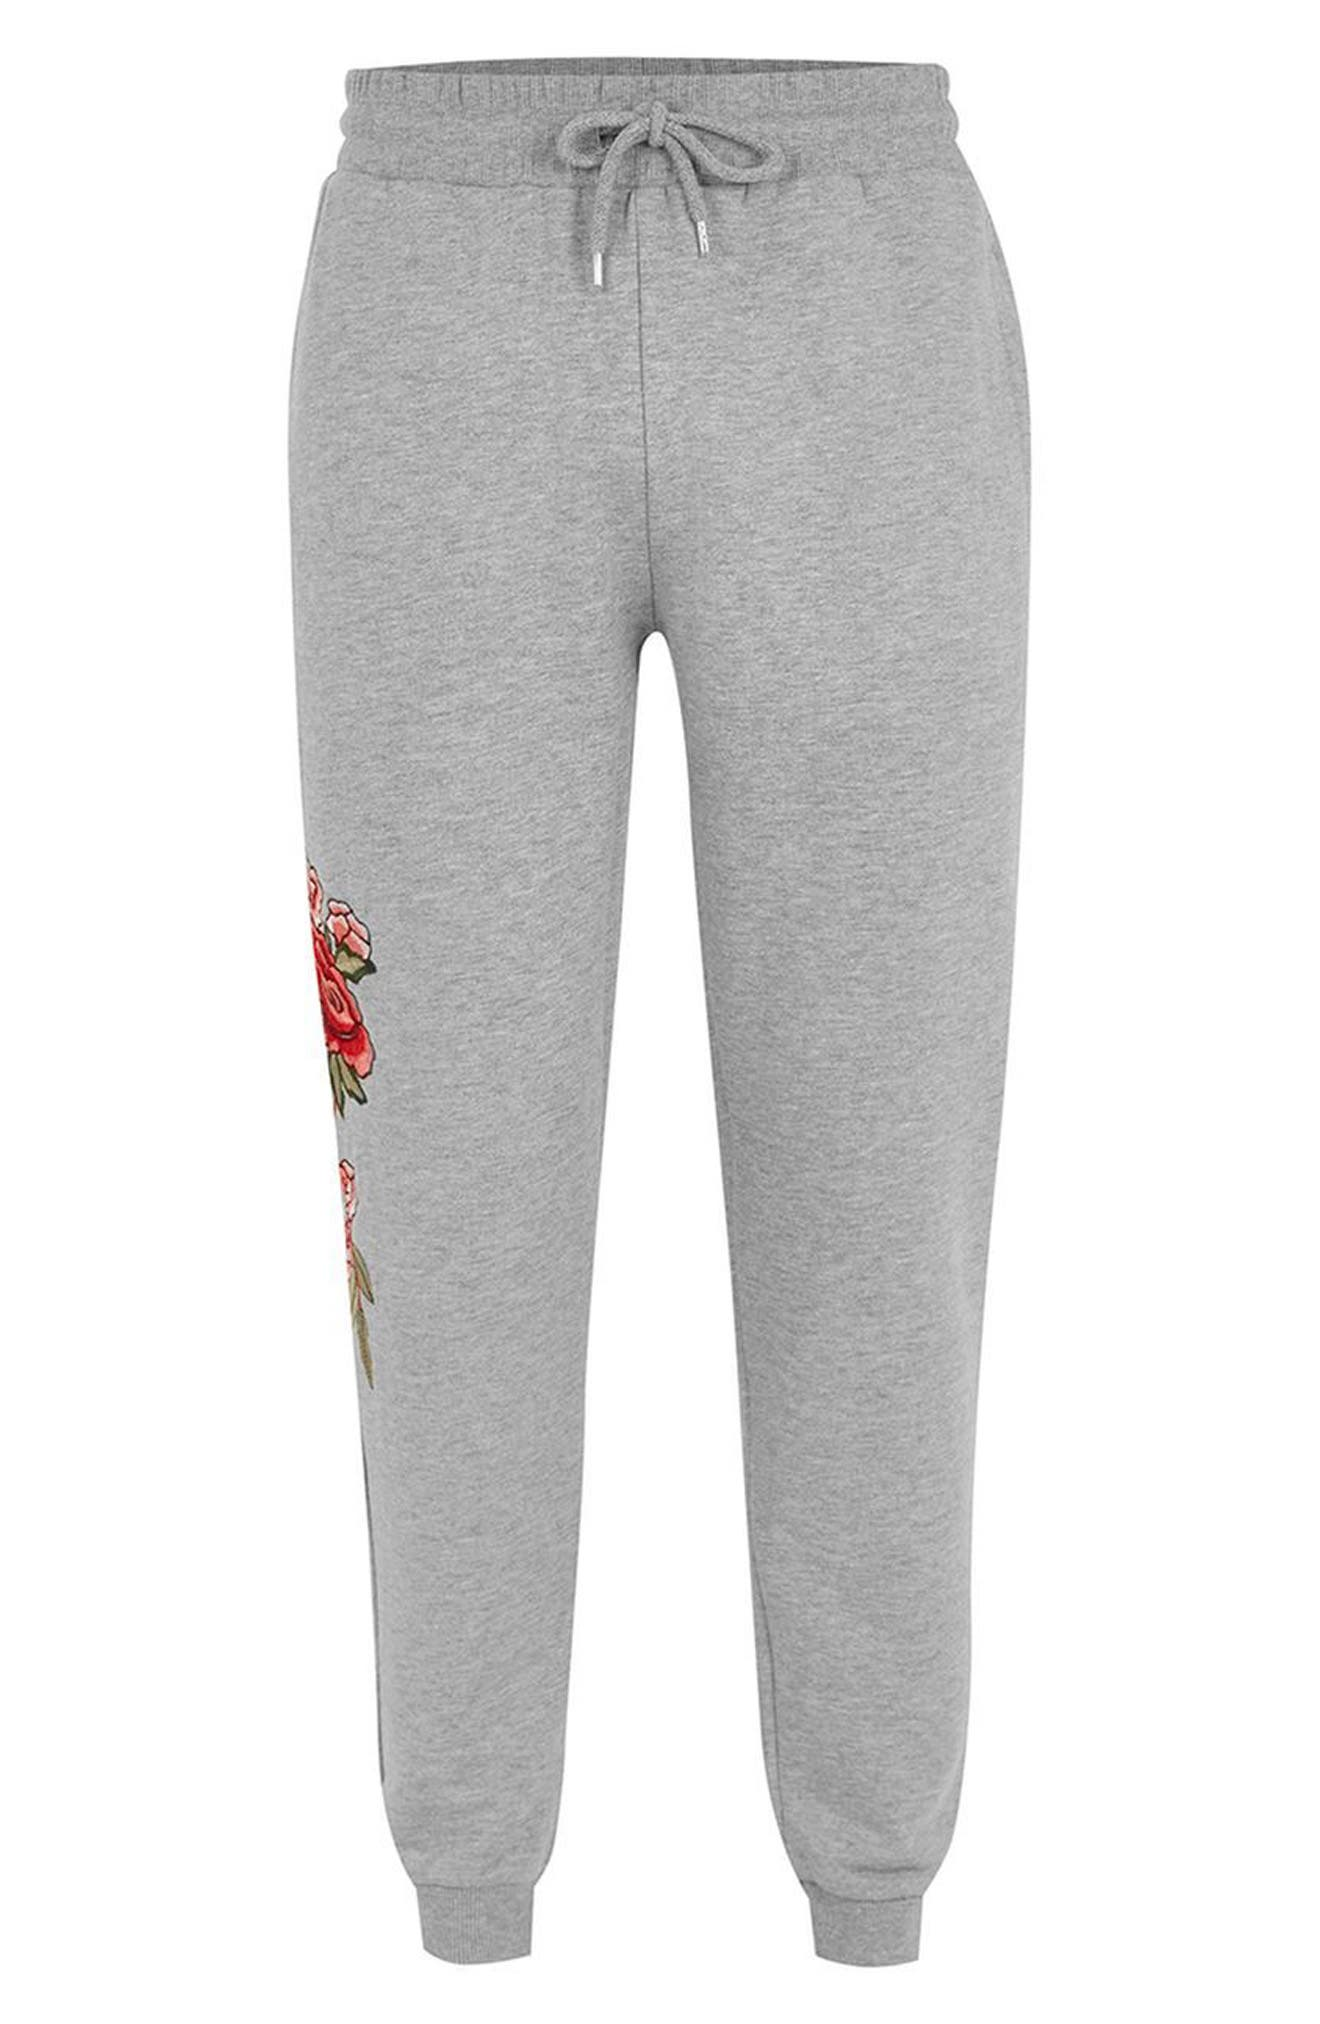 Rose Embroidered Jogger Pants,                             Alternate thumbnail 4, color,                             Grey